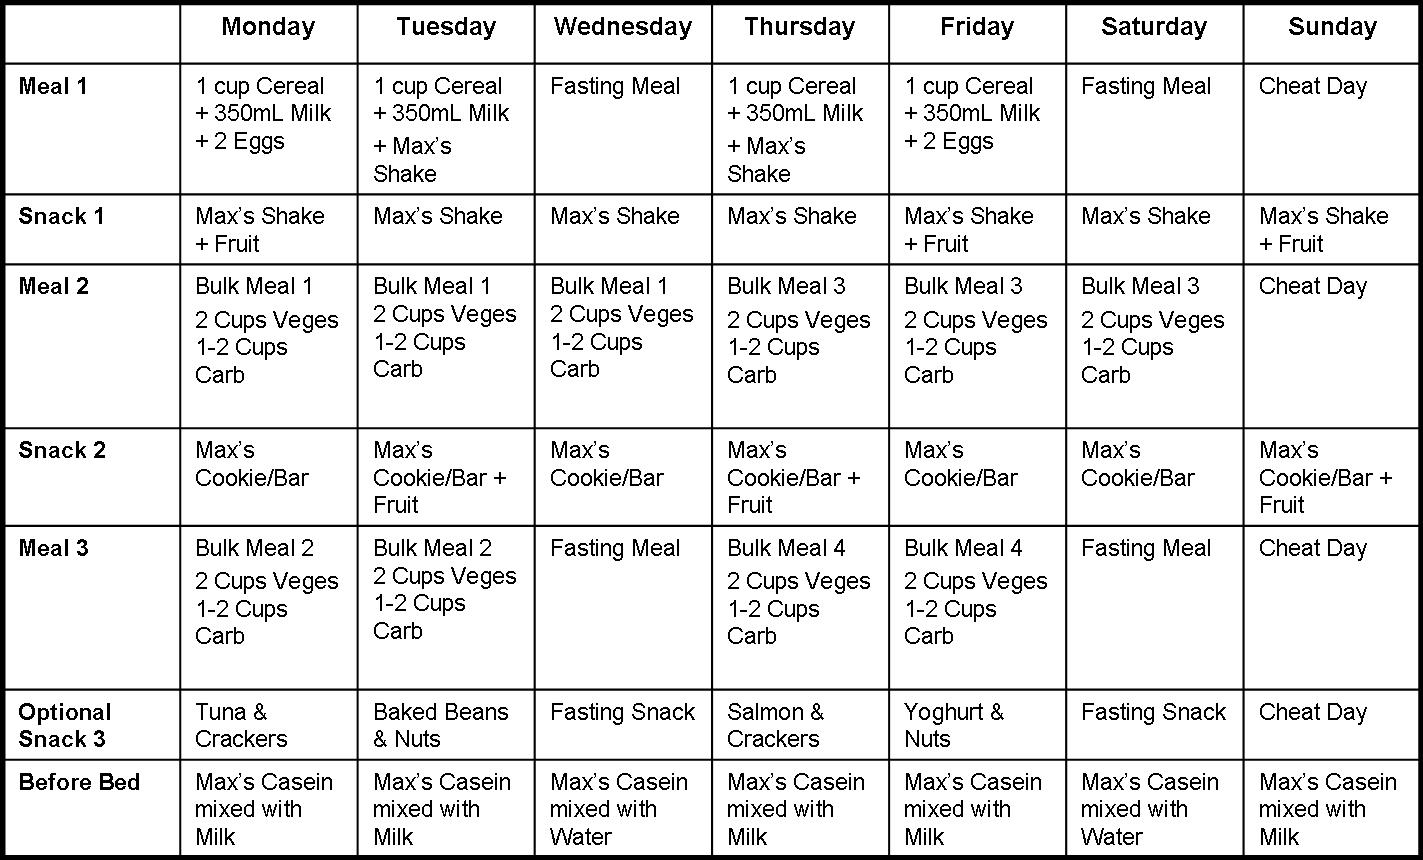 6 Week Diet Plan For Fat Loss – Diet Plan